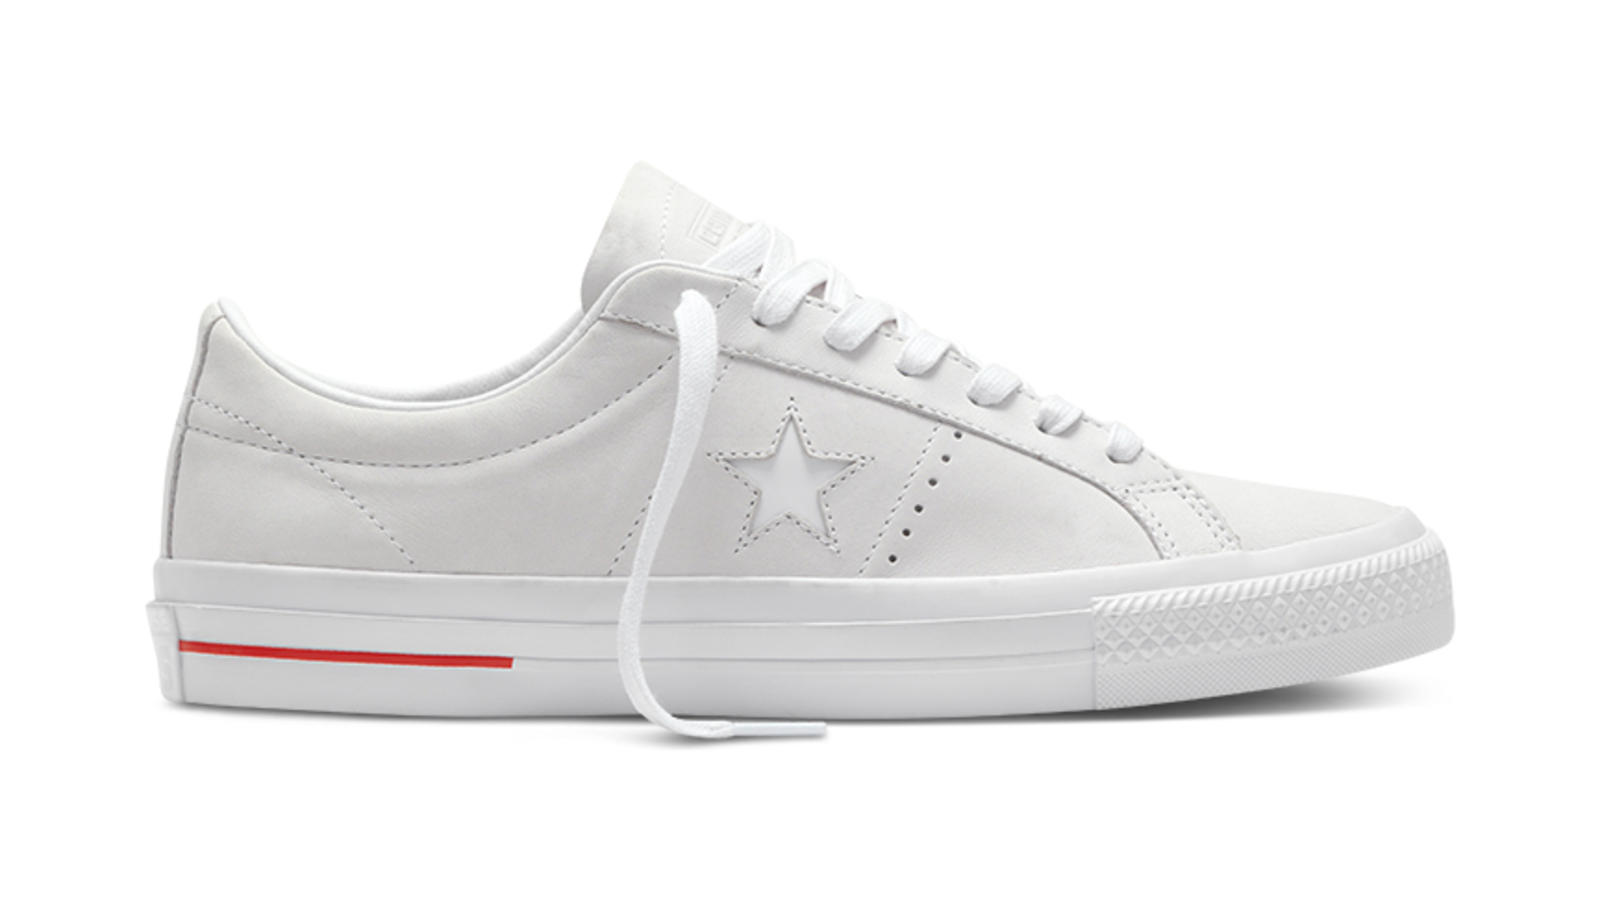 CONVERSE DEBUTS SPRING 2016 CONS ONE STAR PRO AND CONS UTILITY ... acb07b15e